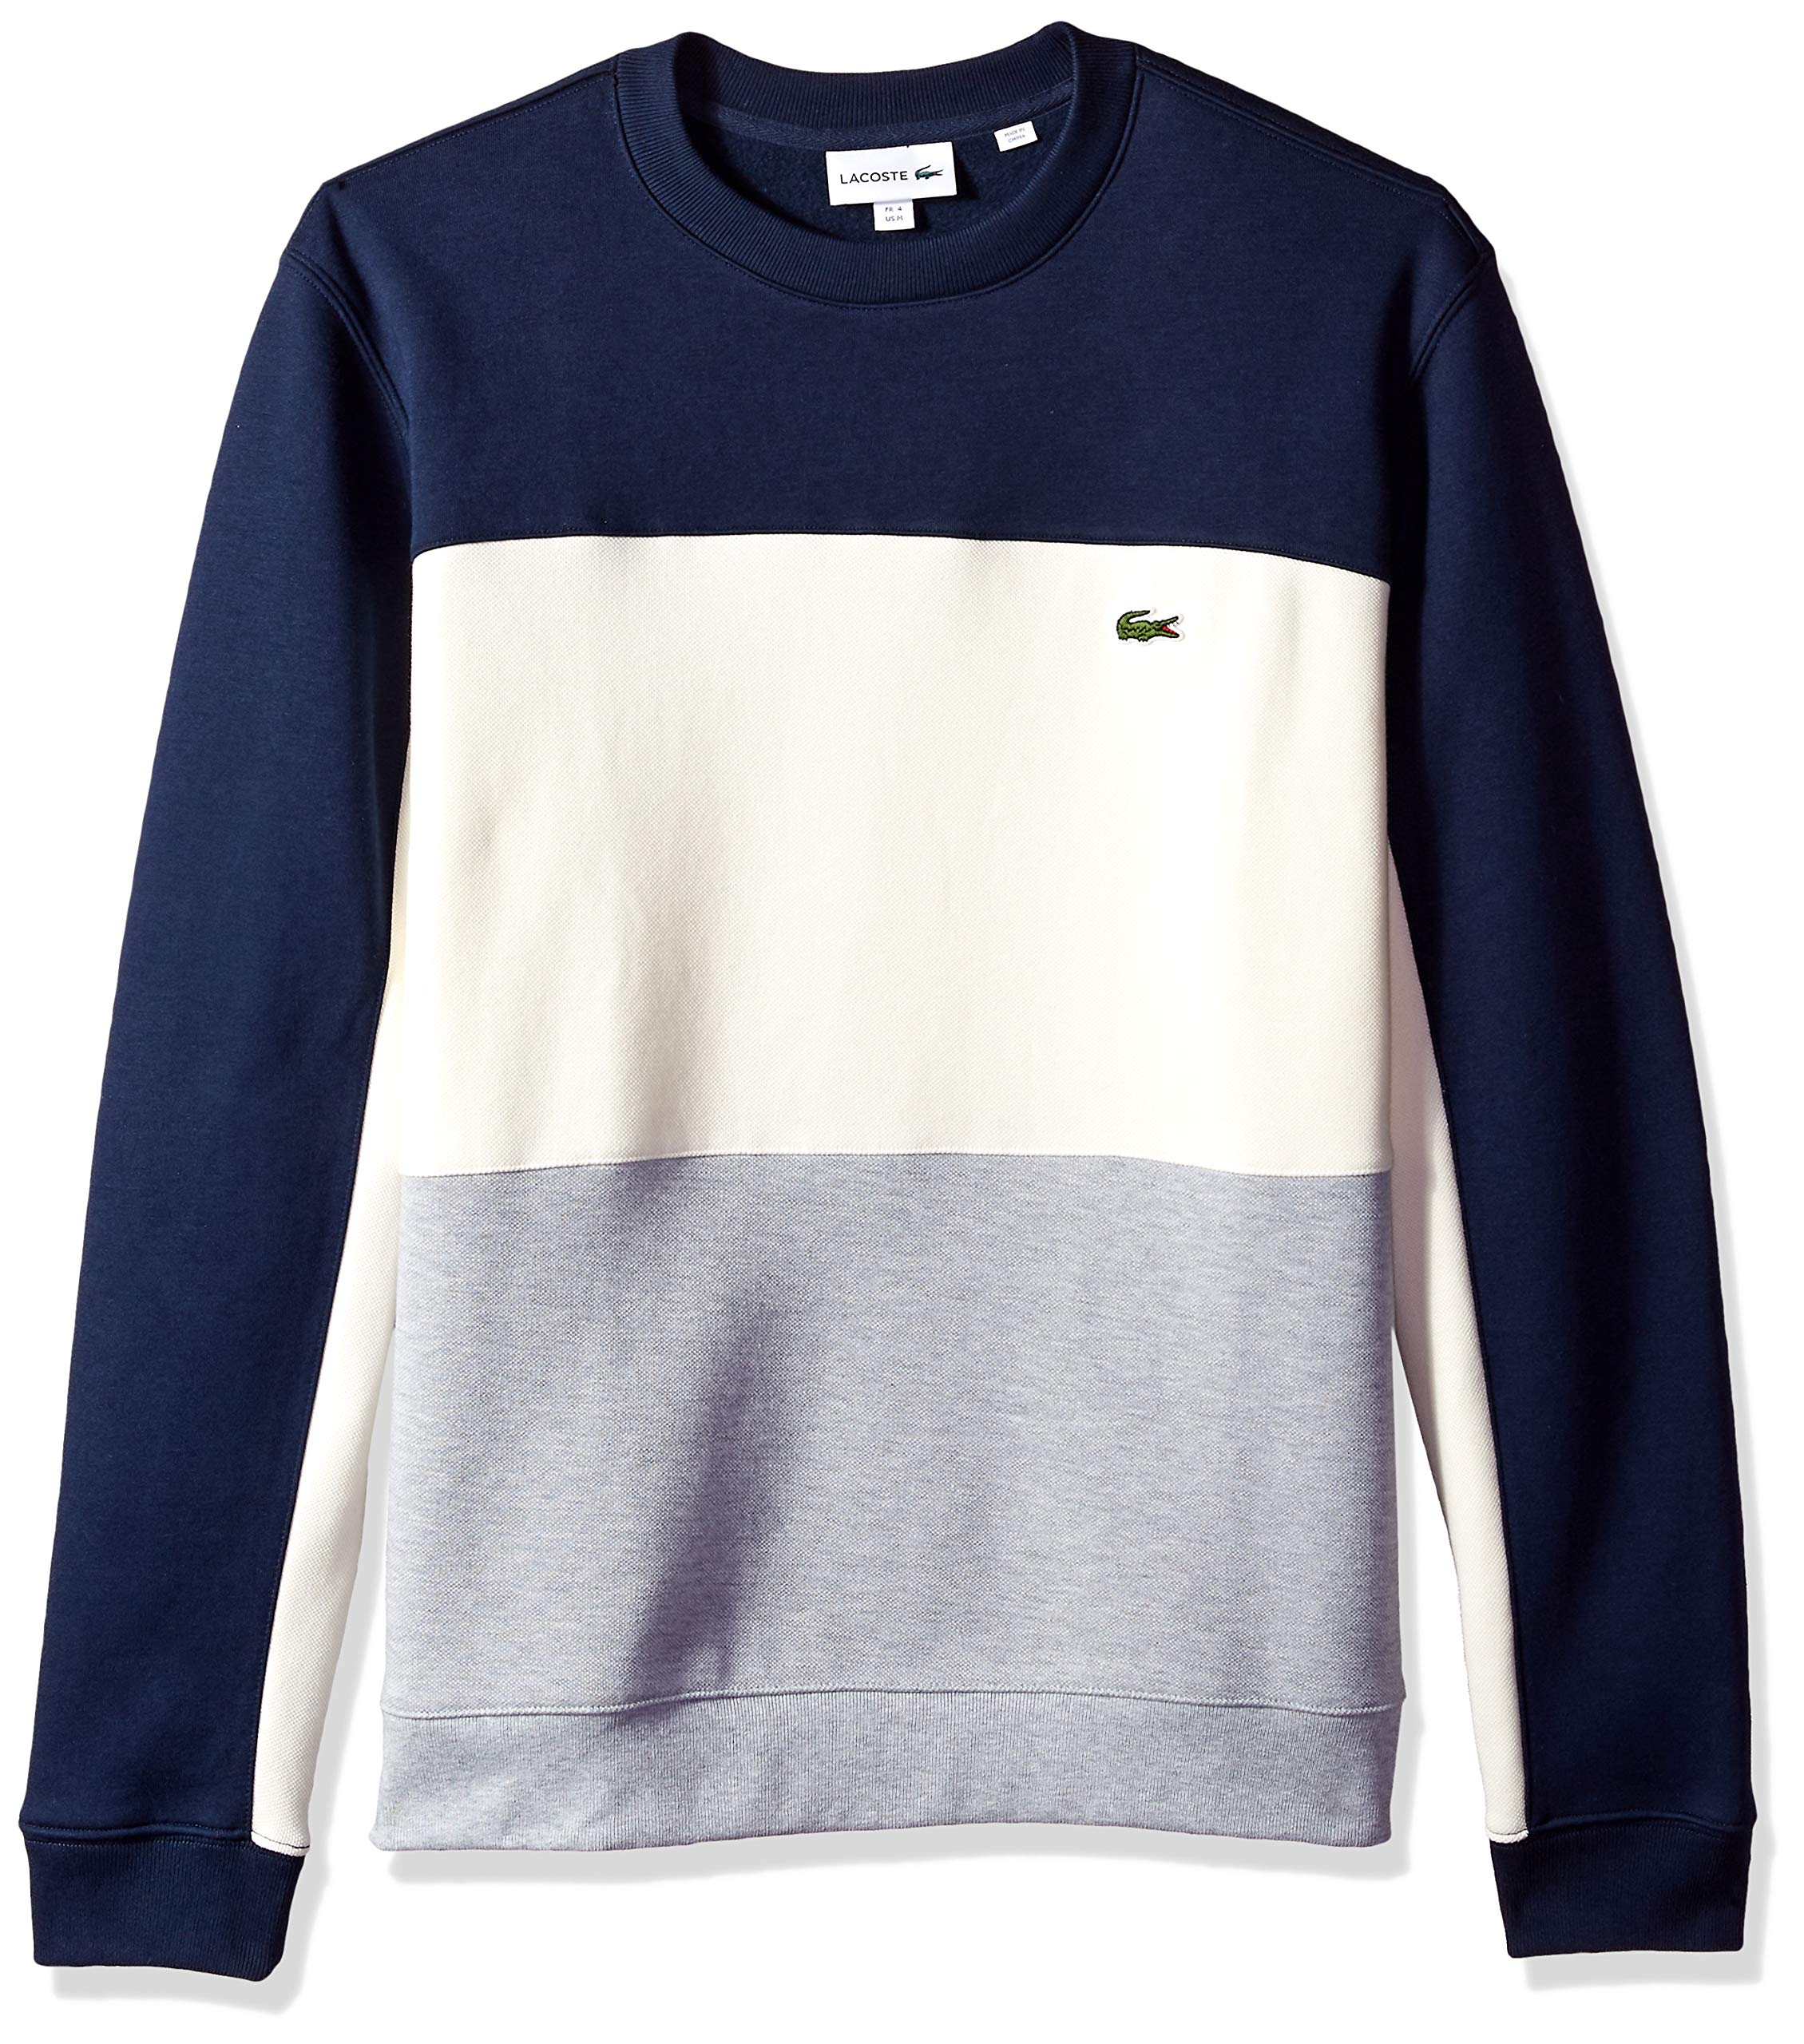 Lacoste Men's Long Sleeve Brushed Pique Fleece Colorblock Sweater, Silver Chine/geode/Navy Blue, Large